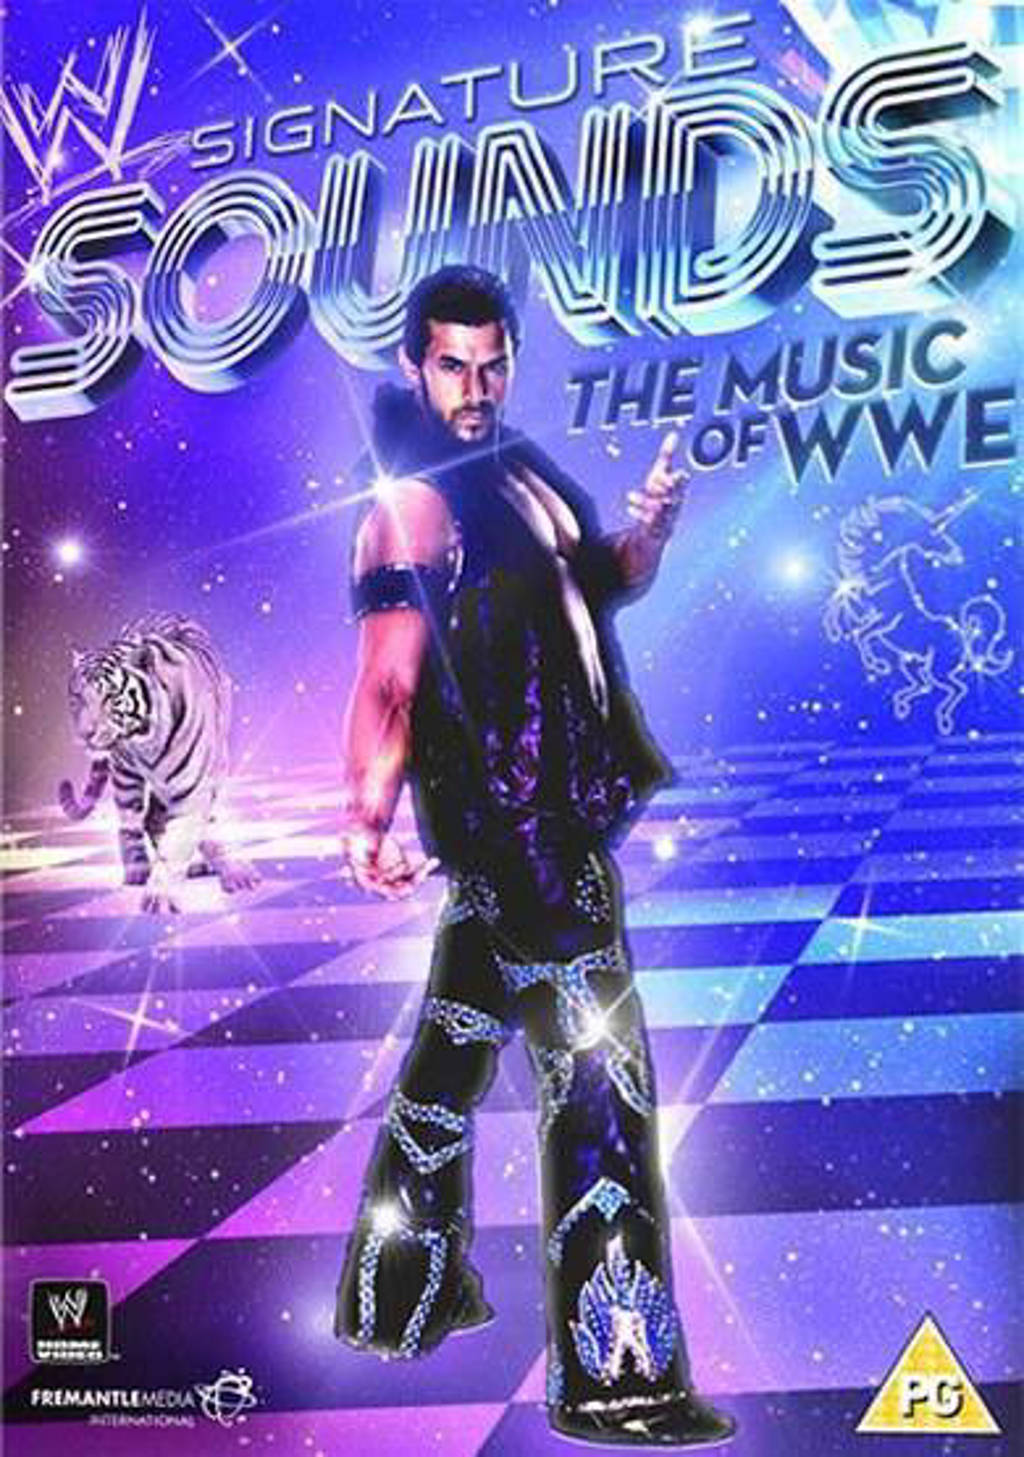 WWE - Signature Sounds-The Music Of WWE (DVD)